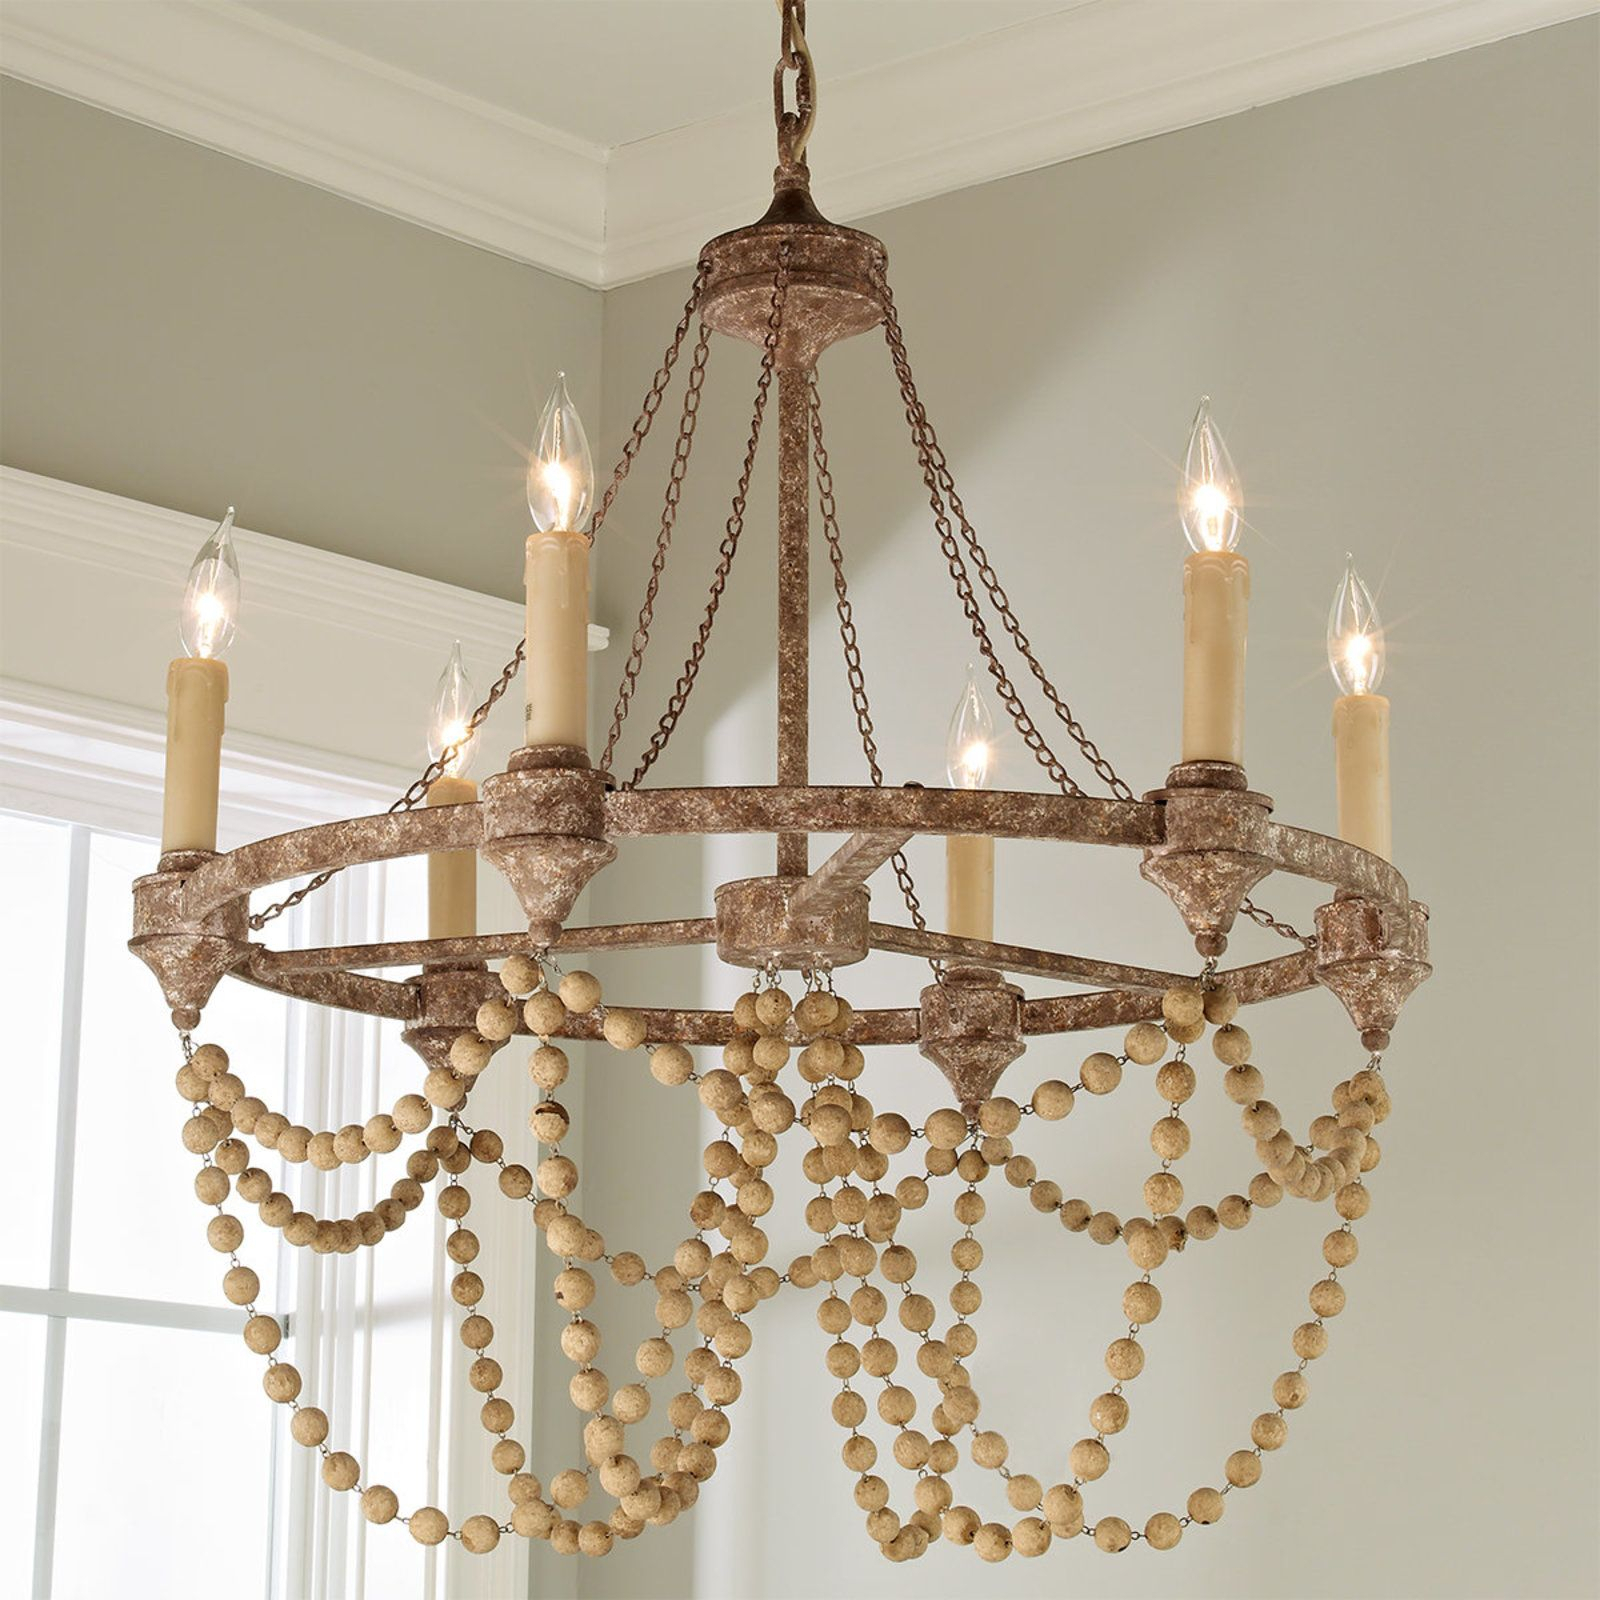 Rustic Refined Wood Bead Chandelier   Chandeliers   Wood Pertaining To Duron 5 Light Empire Chandeliers (View 20 of 30)